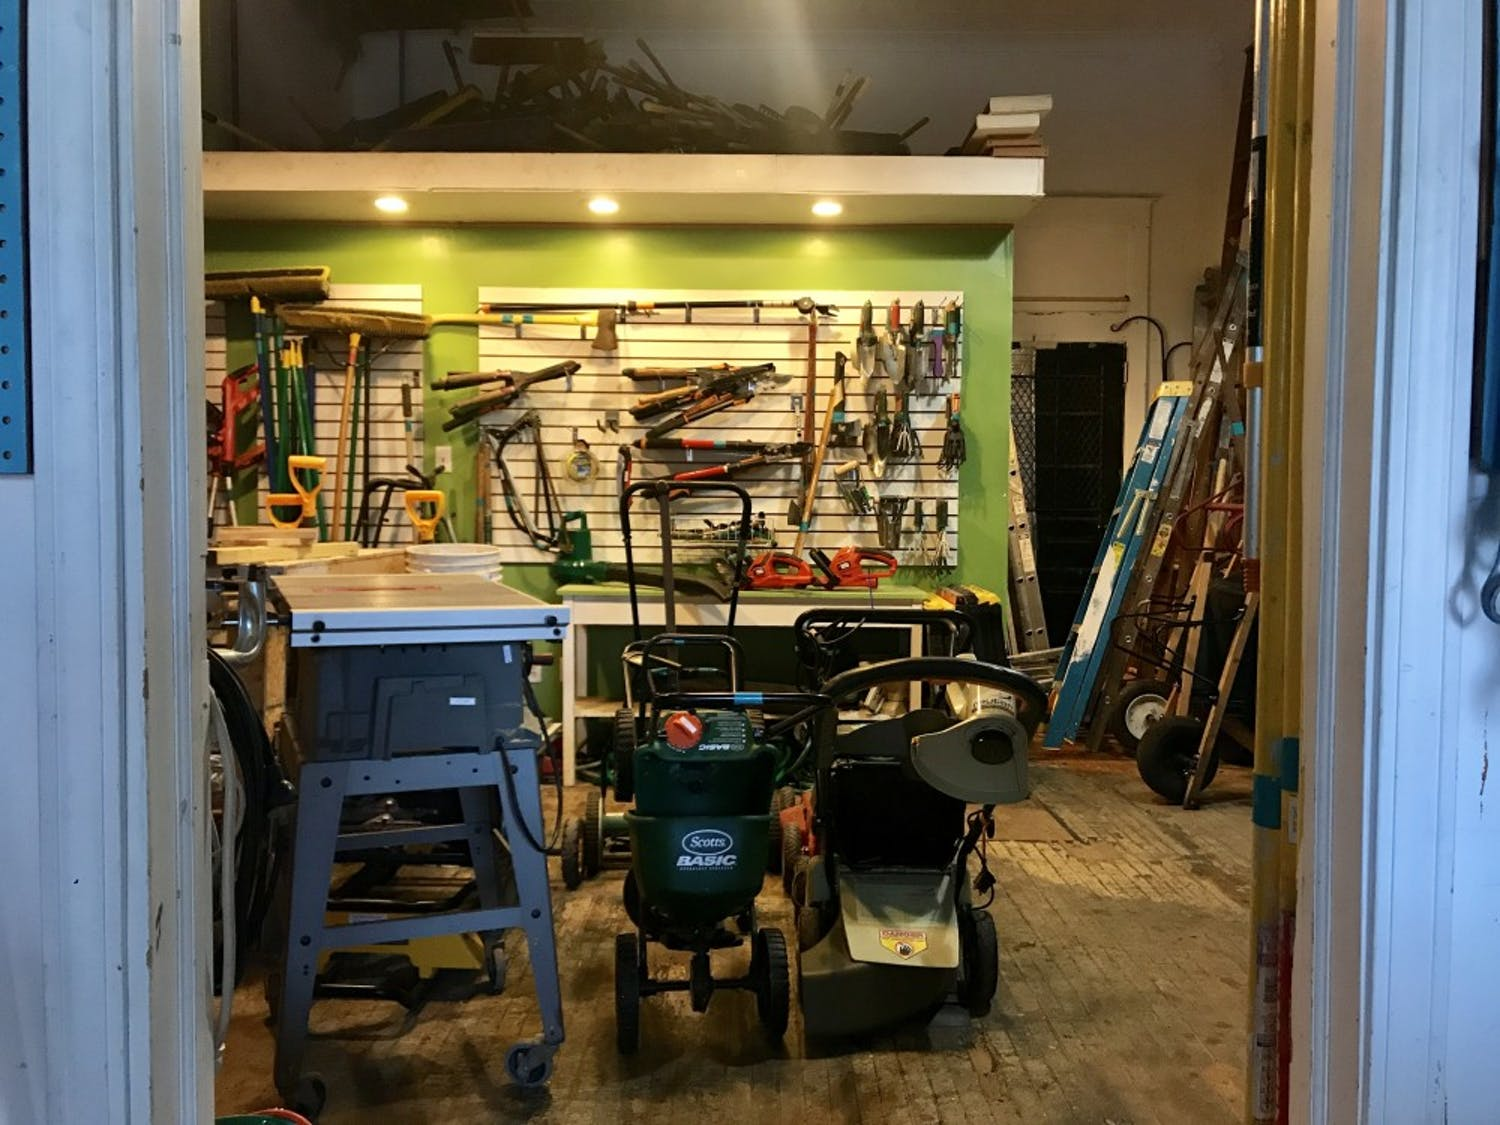 The tool library offers 2,500 different tools on loan for members, who can pay as low as $20 per year to be a member. From hammer drills to paint brushes, the tool library offers home, plumbing and gardens, as well.